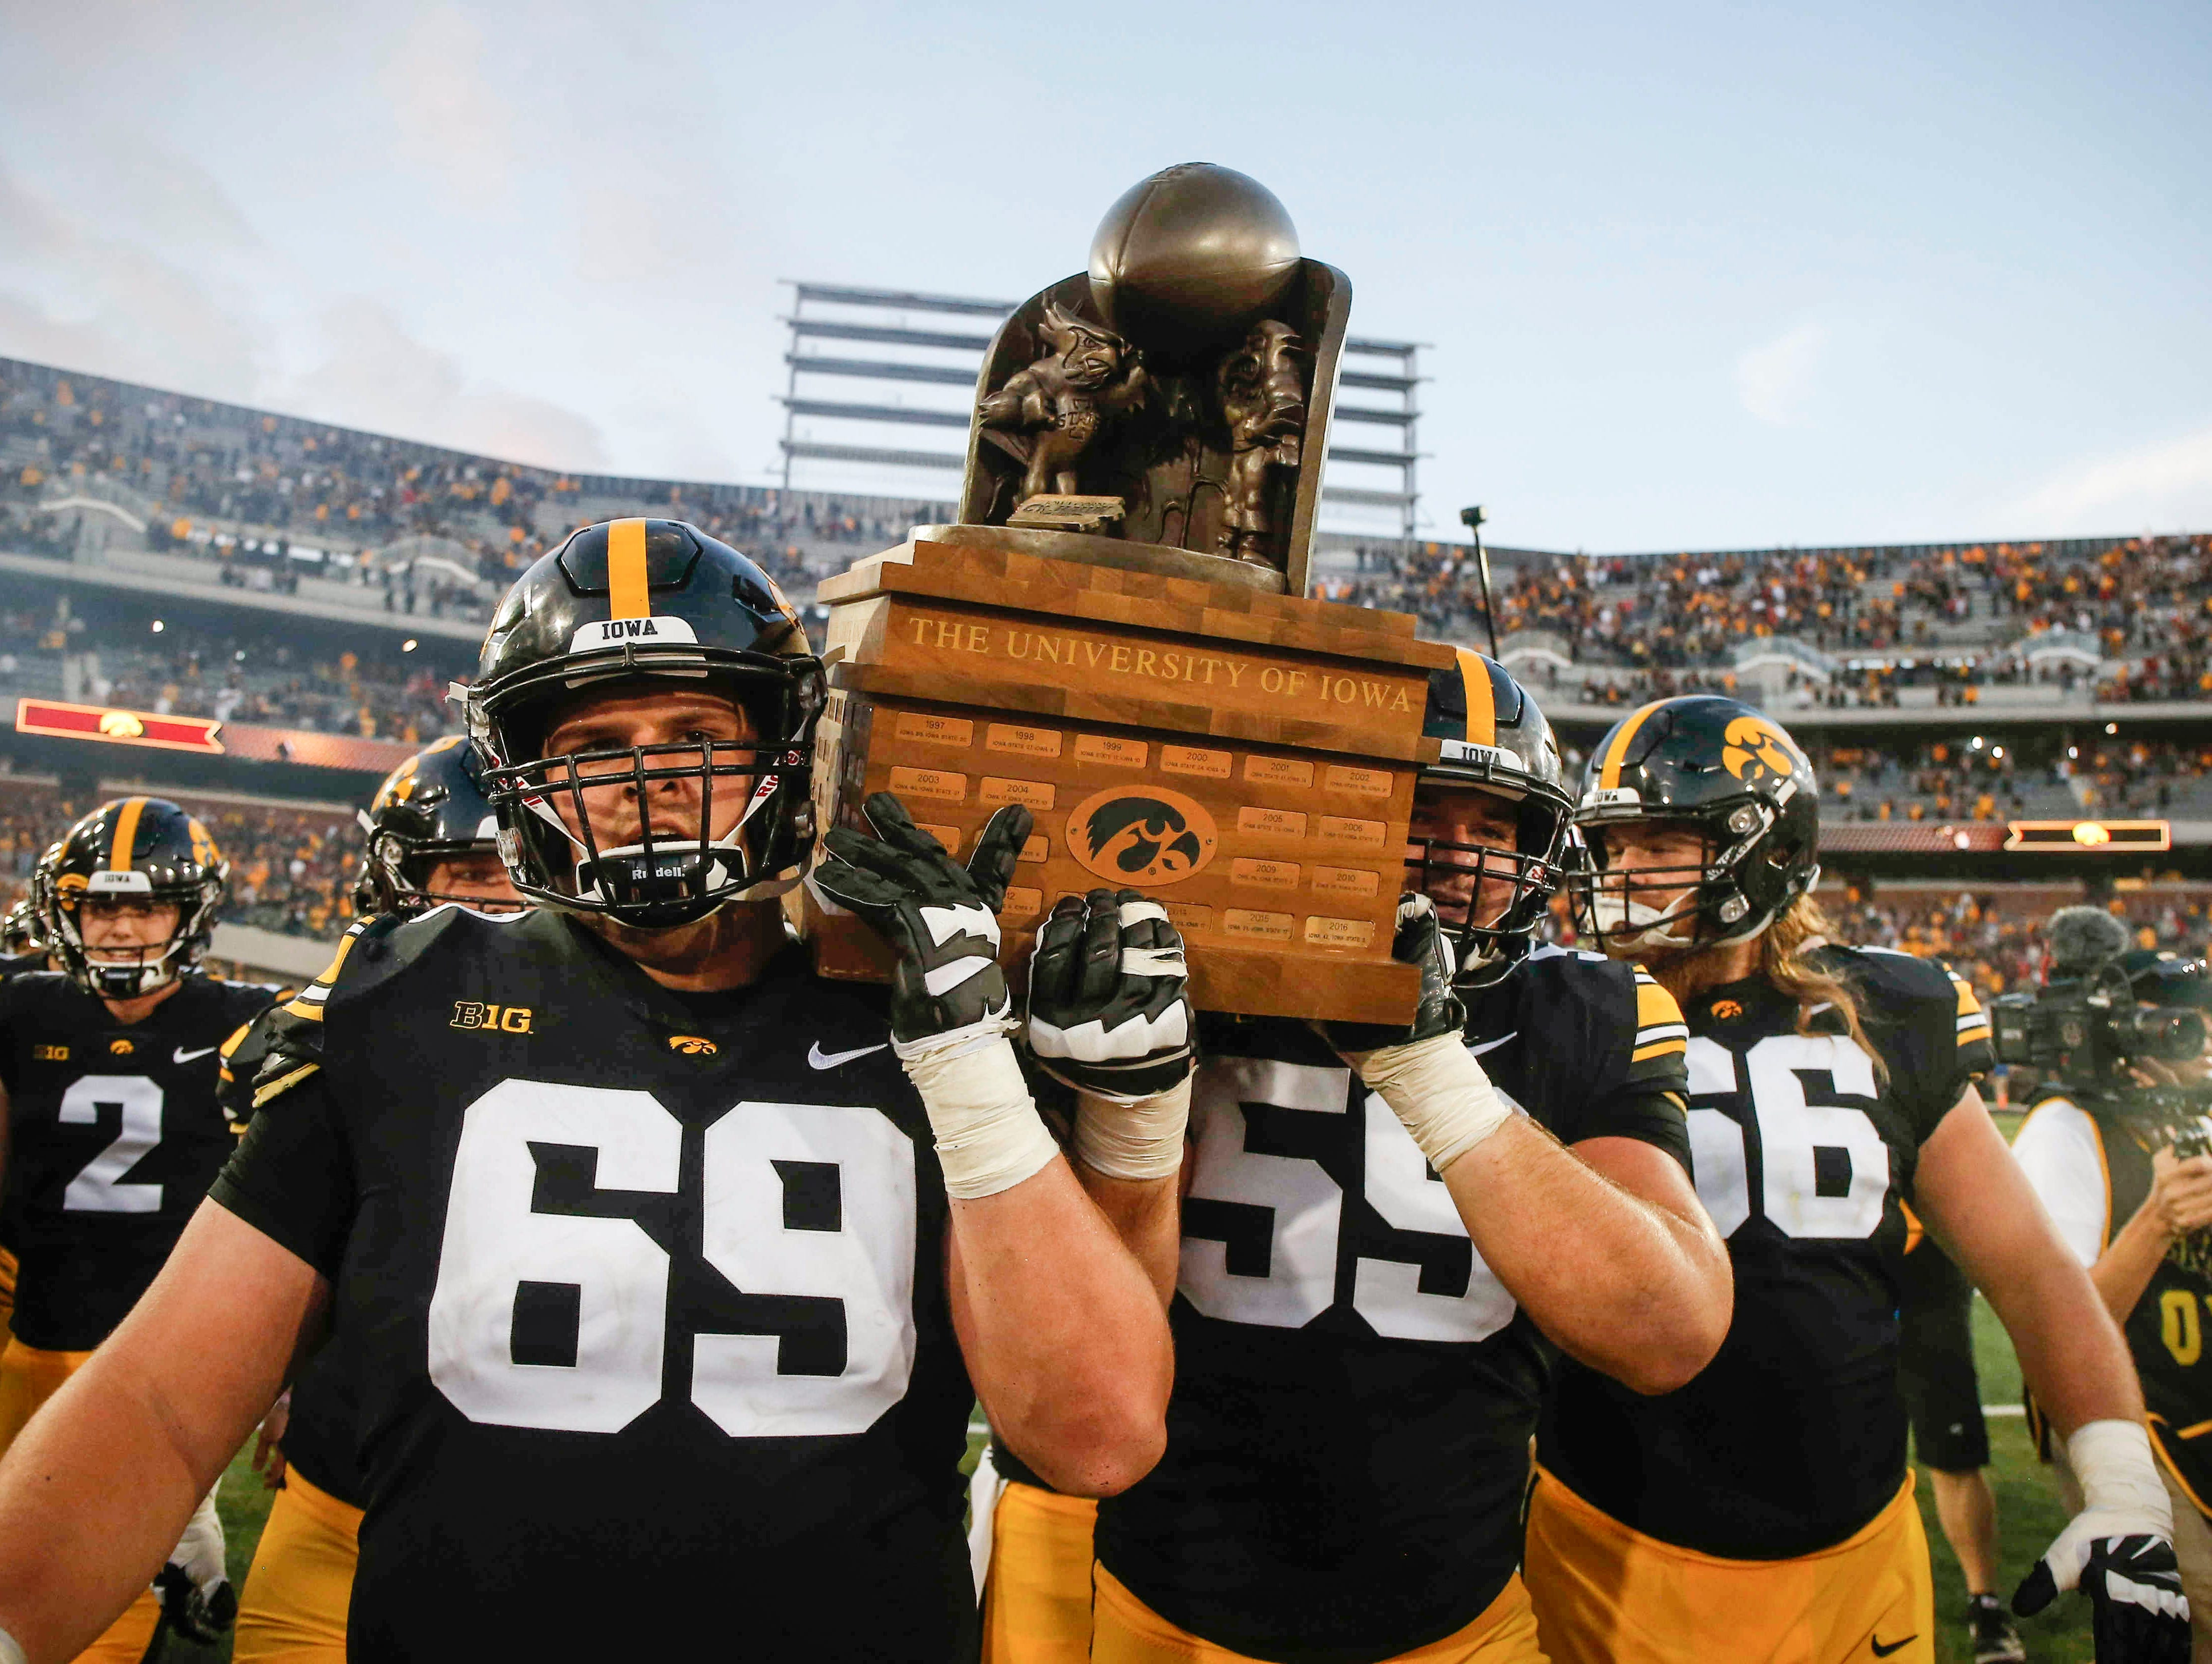 Members of the Iowa Hawkeyes football team carry the CyHawk trophy off the field after a 13-3 win over Iowa State on Saturday, Sept. 8, 2018, at Kinnick Stadium in Iowa City.